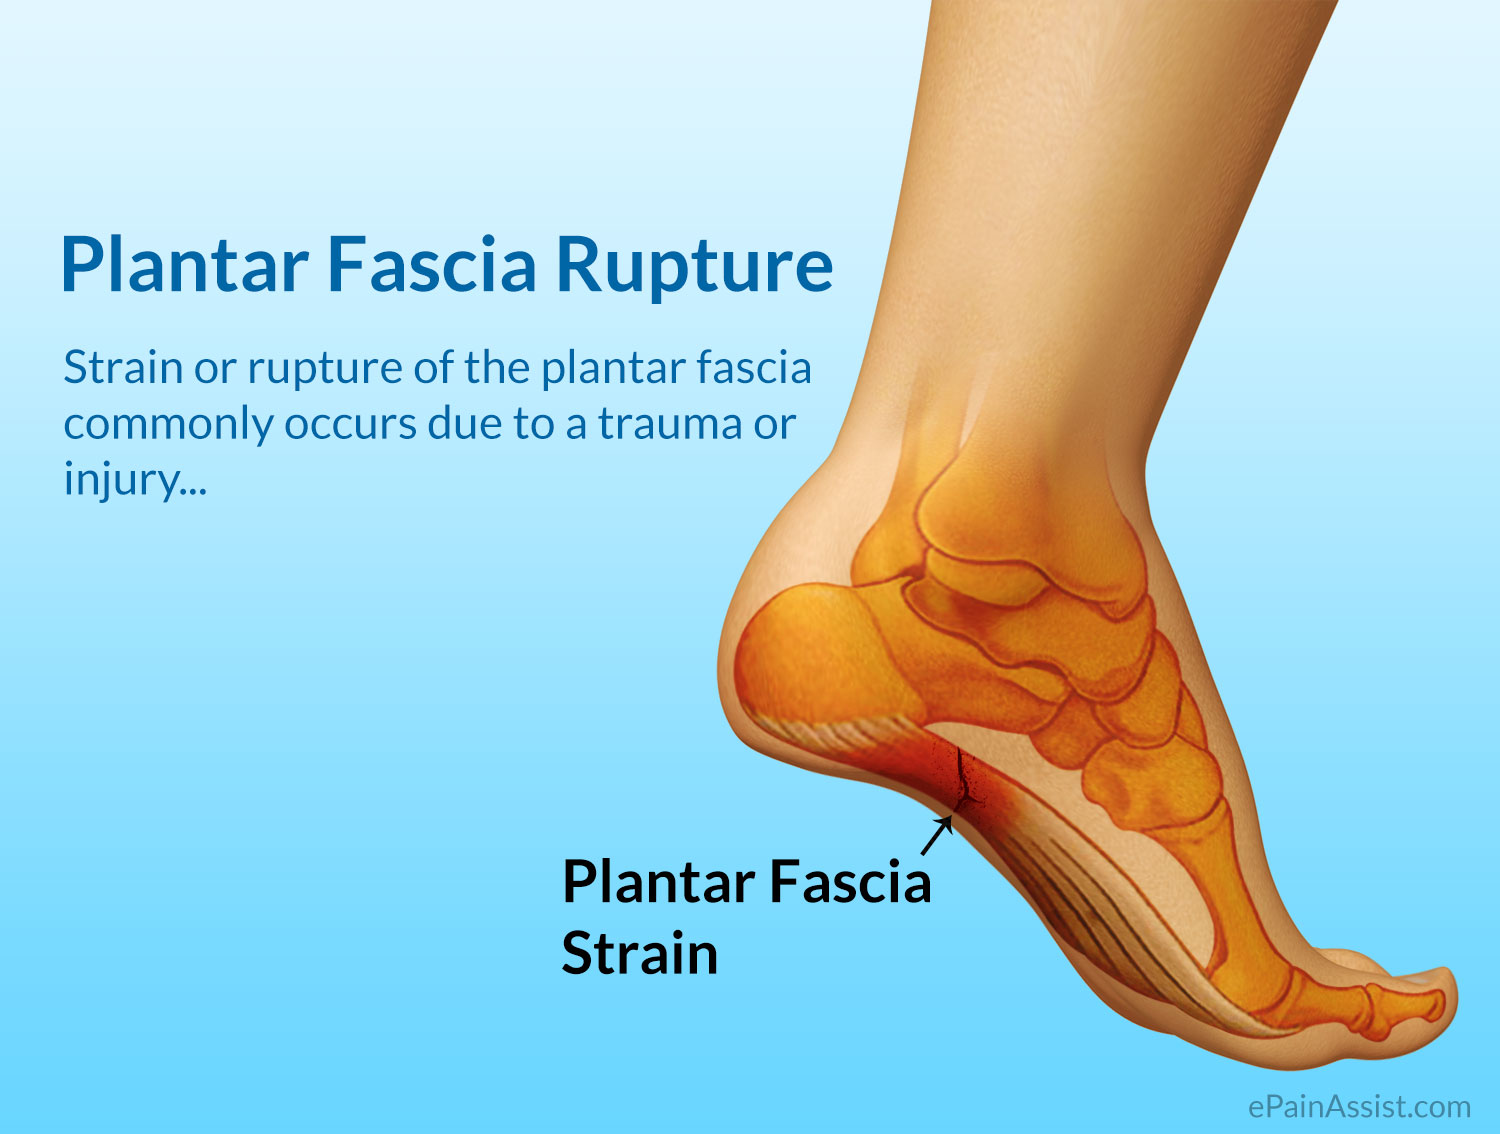 network facitis plantar behaviors jama lifestyle fasciitis fullarticle planter journals